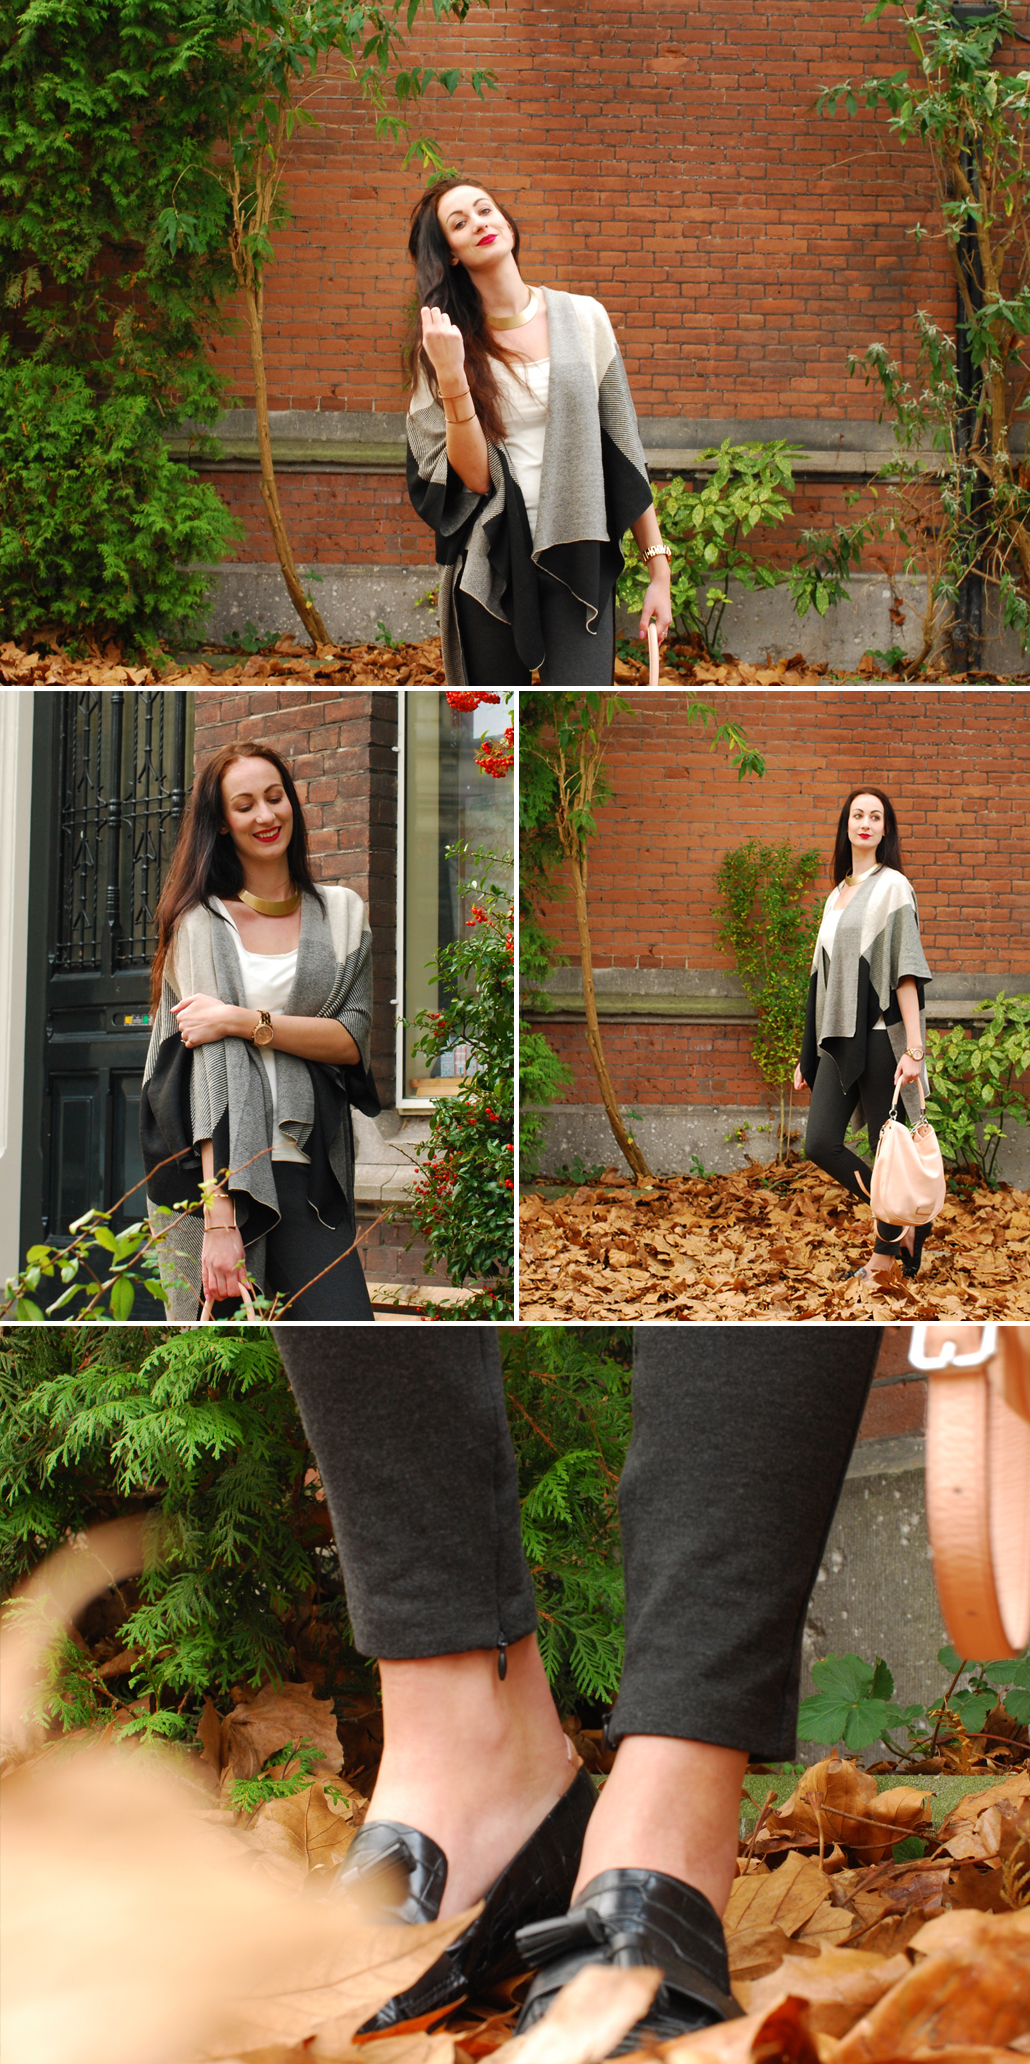 bloggers and brands ruelle dluxe poncho outfit recap 2015 fashion i love fashion bloggers lifestyle by linda